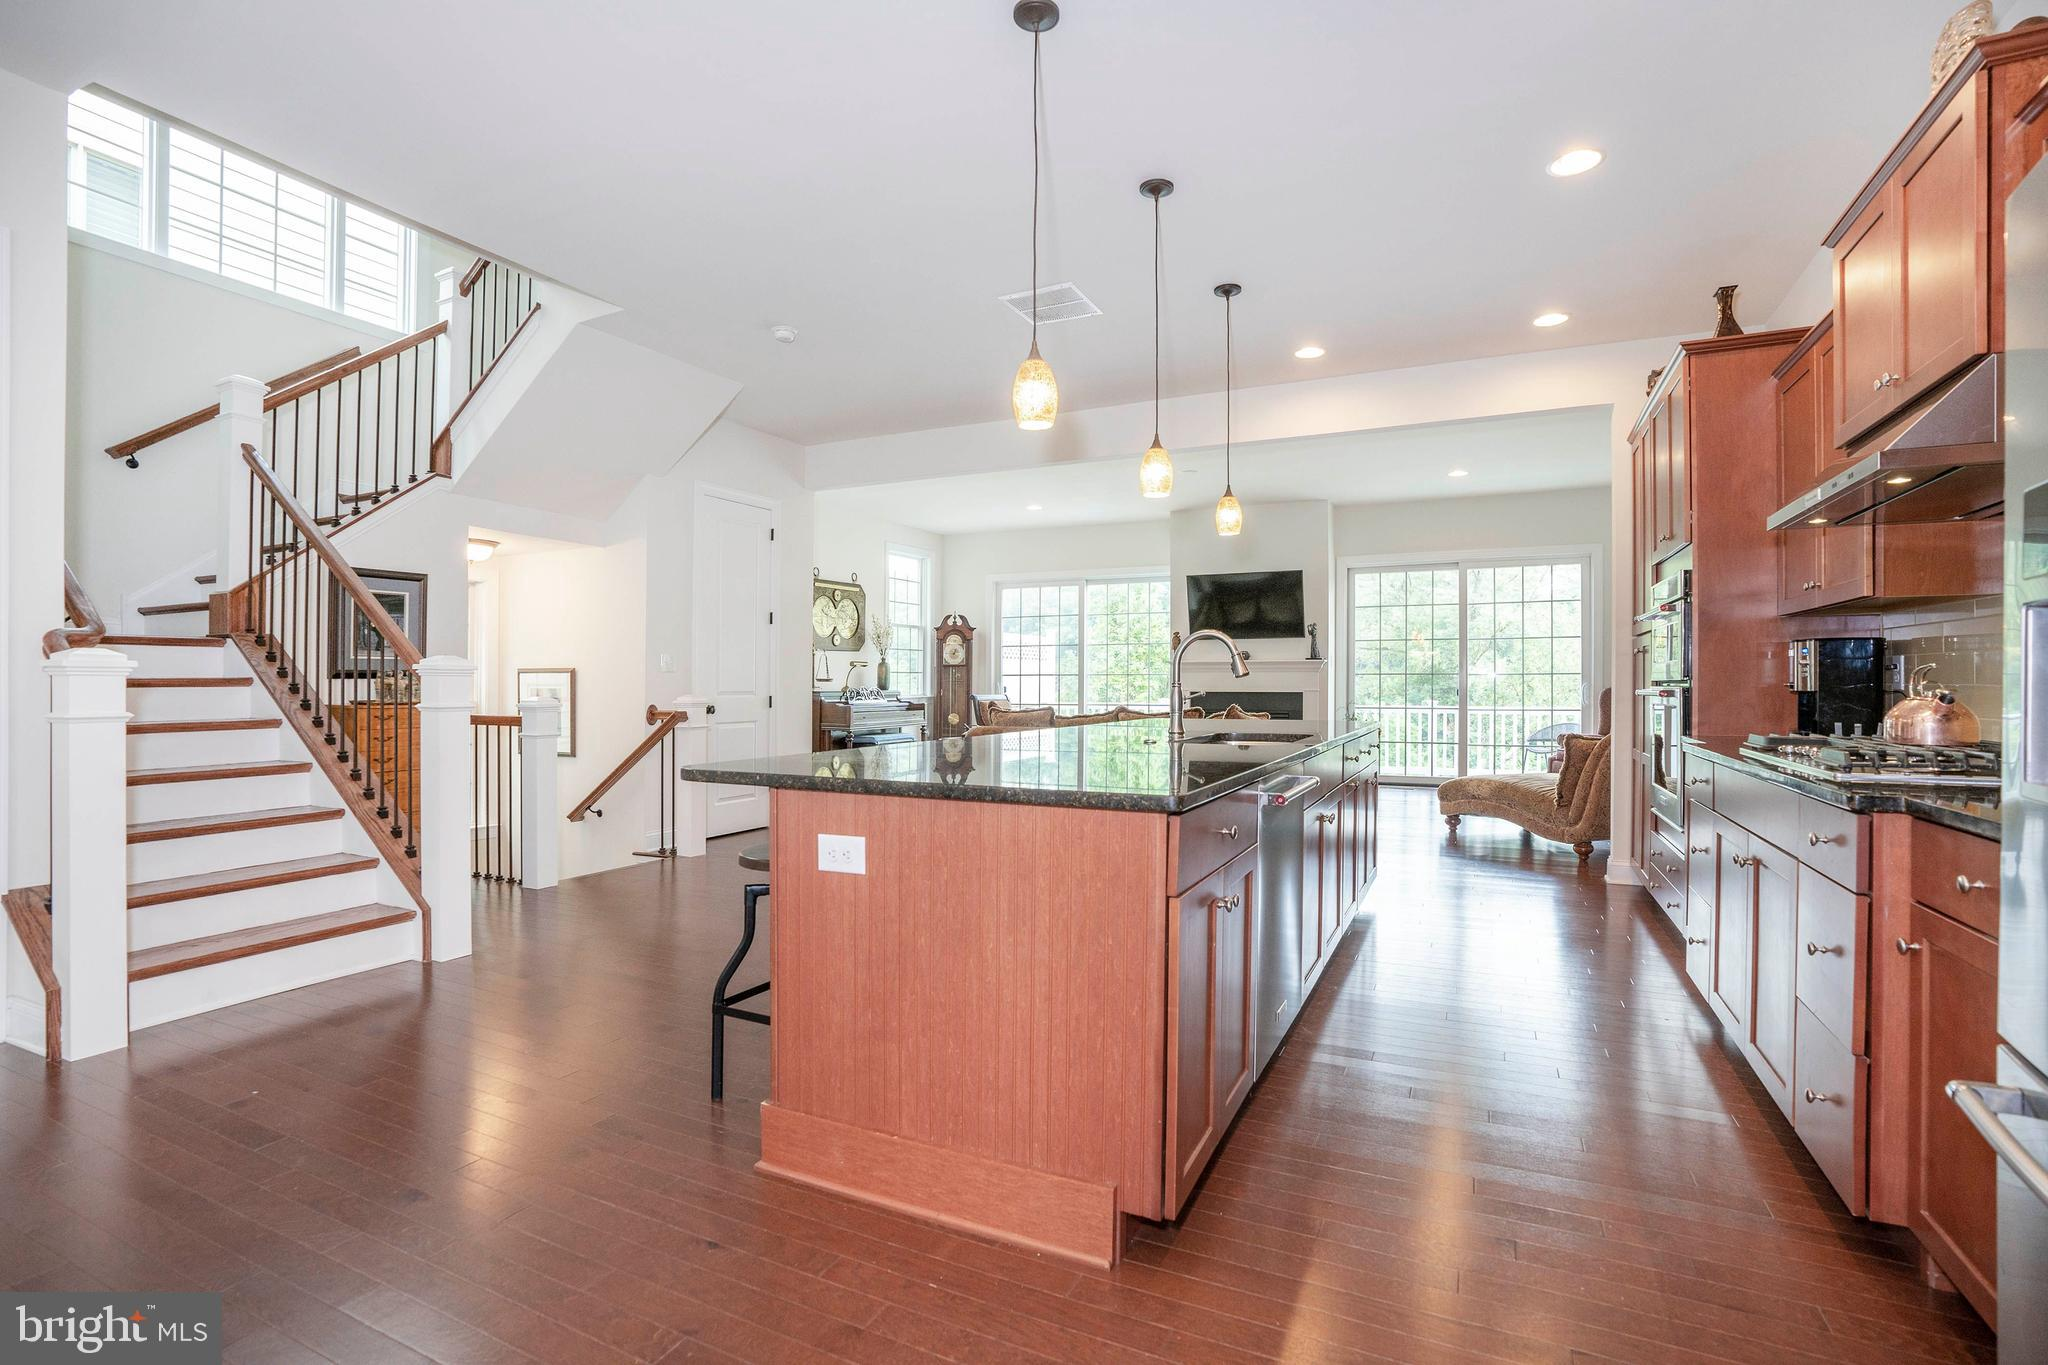 Here is your chance to own an (almost) new home in the classic and historic Highlands and Rockford Park neighborhood! Built by award-winning Montchanin Builders in 2019, this luxurious end of group townhome offers beautiful views overlooking Rockford Falls, the Brandywine River, the Alapocas Greenway and rock climbing wall! Truly an OPEN CONCEPT floor plan with loads of natural light, this home boasts 10' main floor ceilings and 9' ceilings on the entry level and upper floor. Featuring a gourmet kitchen with designer cabinetry, oversized island, counter height for entertaining and every day living. Pocket office on main level and bonus bedroom and living space on the entry level with a full bath featuring tiled floor and granite vanity top.  The unfinished basement as doors to a walk out level at the back yard and could easily be finished for bonus space including a home theater room, play room, home office, artist studio or workshop! This home features natural gas heating, high efficiency Jeld-Wen windows, concrete siding and stone which all combine for an energy efficient home. This lifestyle is truly low maintenance since all of the grass is cut, and lower beds are maintained by the association for a low monthly fee. Ideally located within walking distance to Trolley Square for shopping, restaurants, hospitals, nearby Rockford & Brandywine Parks, the Delaware Art Museum AND with easy access to all major highways.